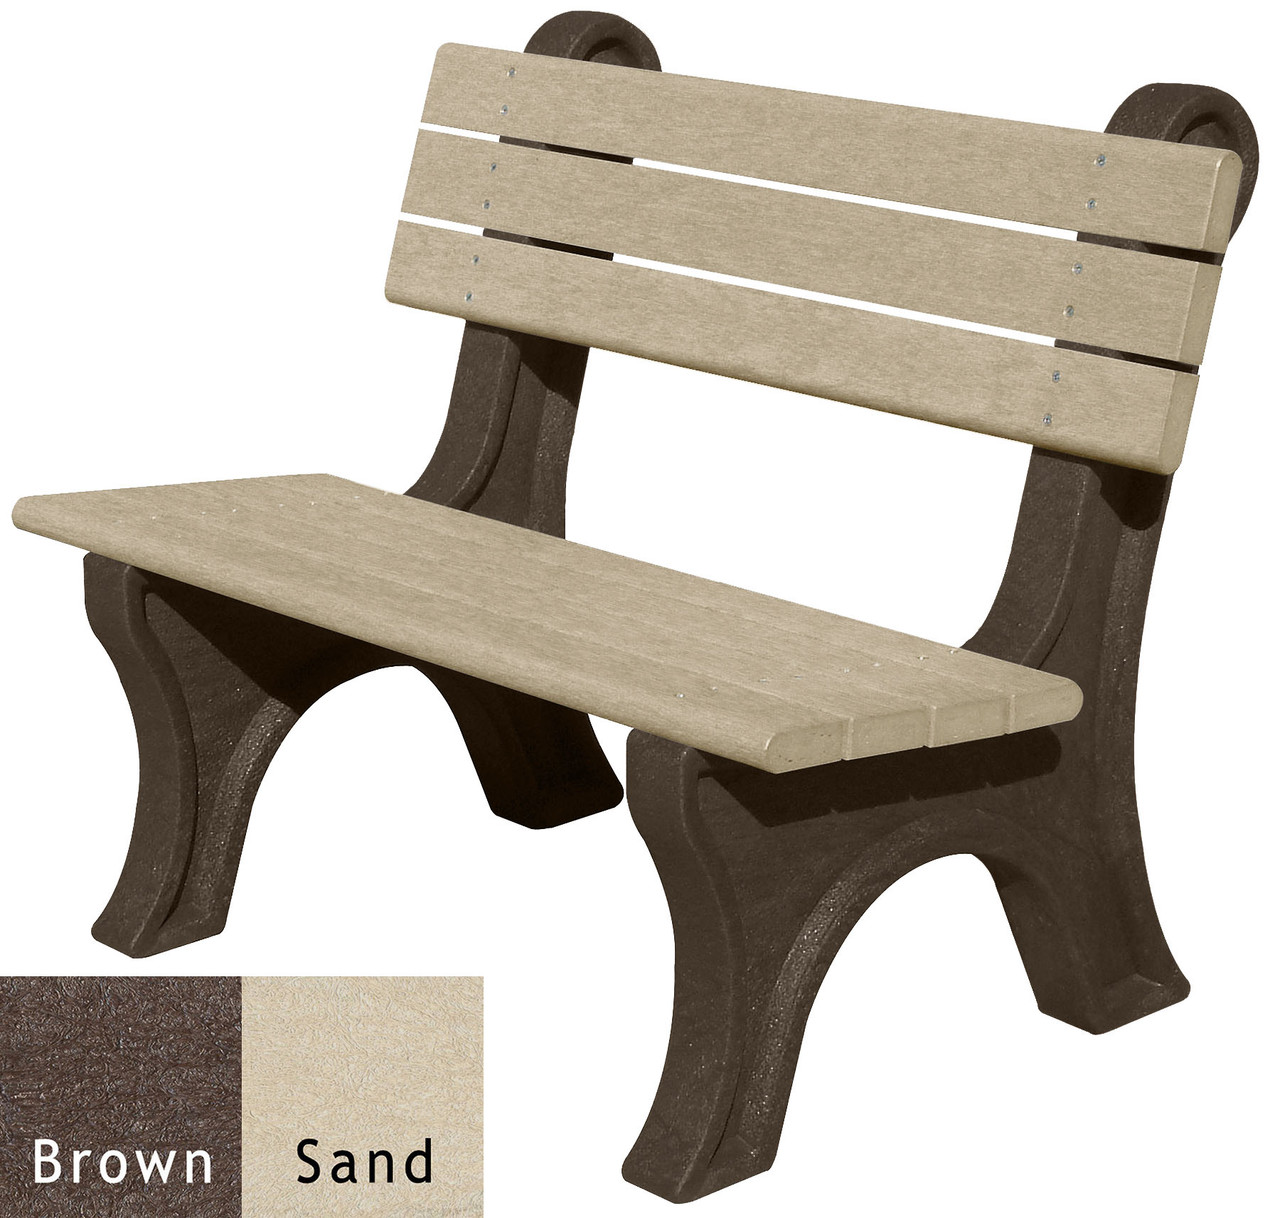 Brown and Sand